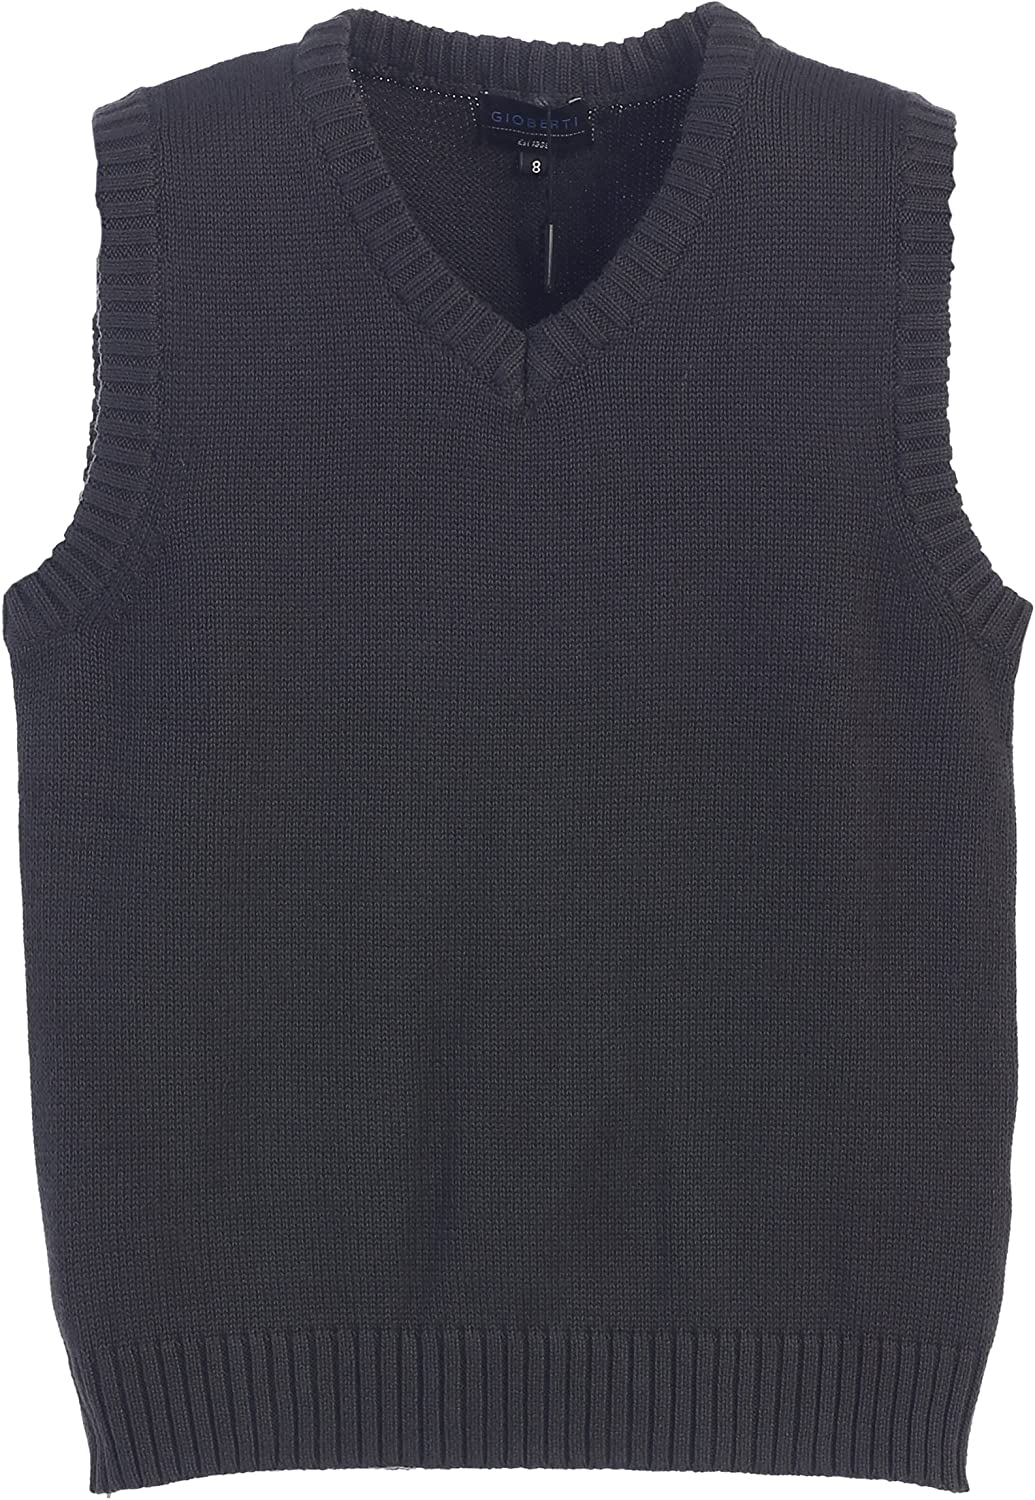 Charcoal Gioberti Boys V-Neck Knitted Pullover Sweater Vest Size 12